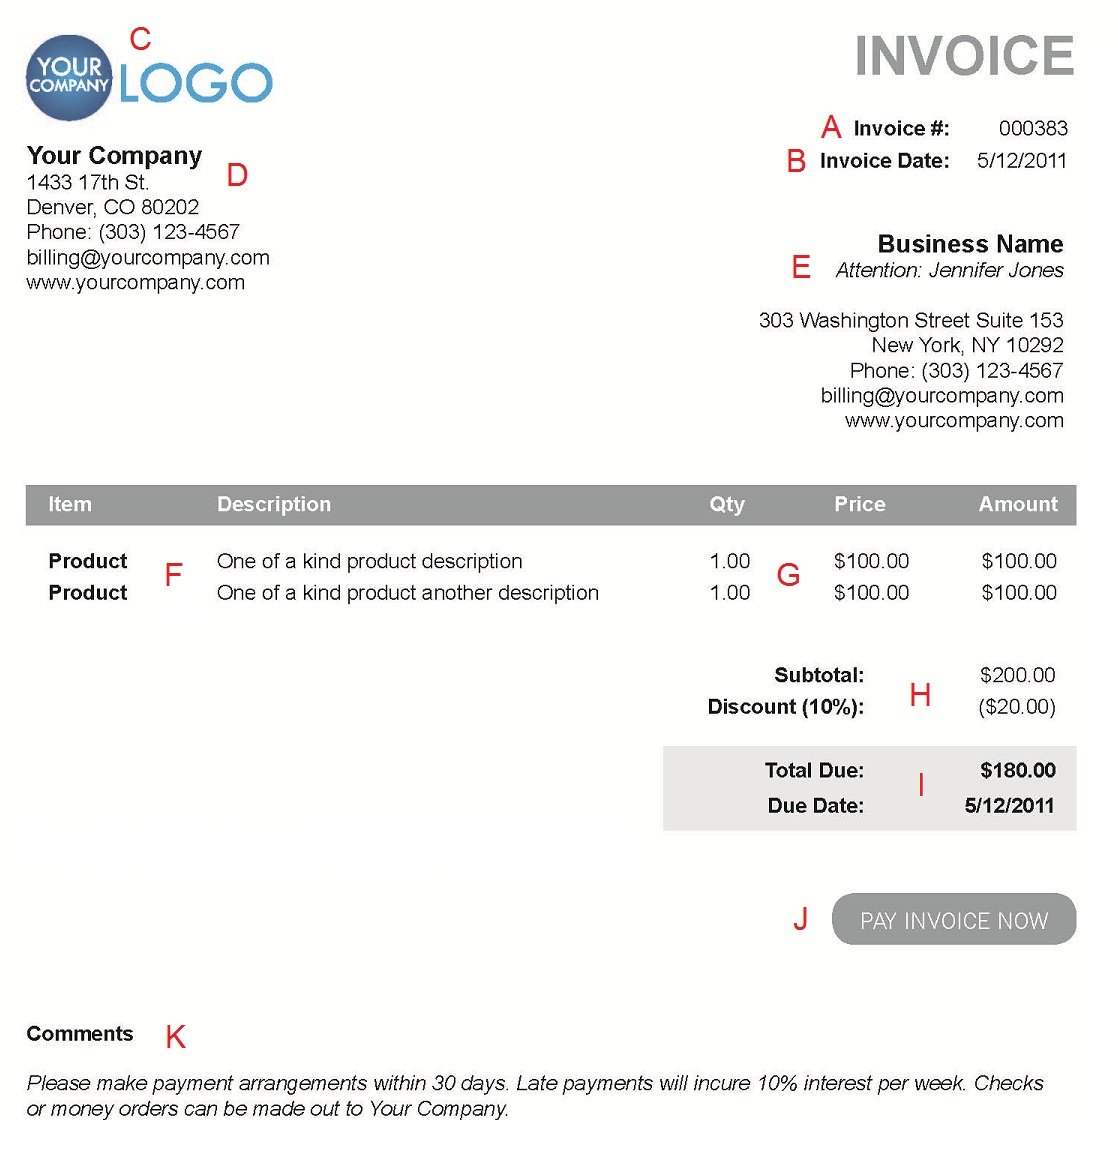 Usdgus  Prepossessing The  Different Sections Of An Electronic Payment Invoice With Luxury A  With Beauteous Outstanding Invoice Letter Also Toyota Highlander Invoice In Addition Creating An Invoice In Quickbooks And What Is Invoice Price On A New Car As Well As Sample Excel Invoice Additionally Canadian Custom Invoice From Paysimplecom With Usdgus  Luxury The  Different Sections Of An Electronic Payment Invoice With Beauteous A  And Prepossessing Outstanding Invoice Letter Also Toyota Highlander Invoice In Addition Creating An Invoice In Quickbooks From Paysimplecom